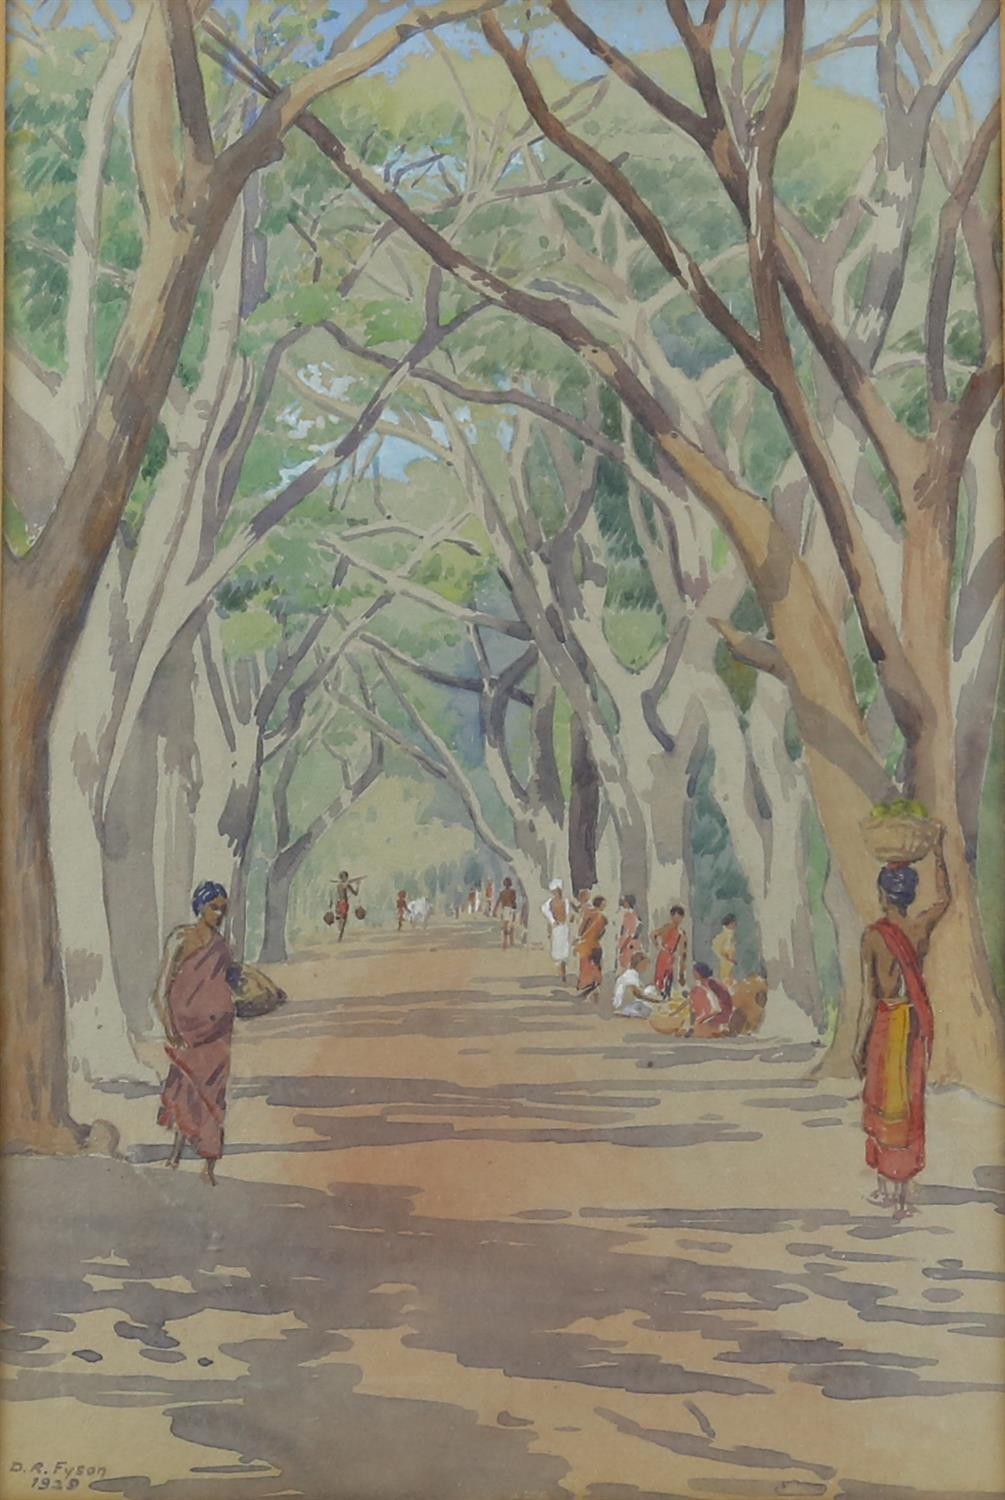 D R Fyson, British 1886-1947, Indian tree covered road with figures, signed and dated 1929,